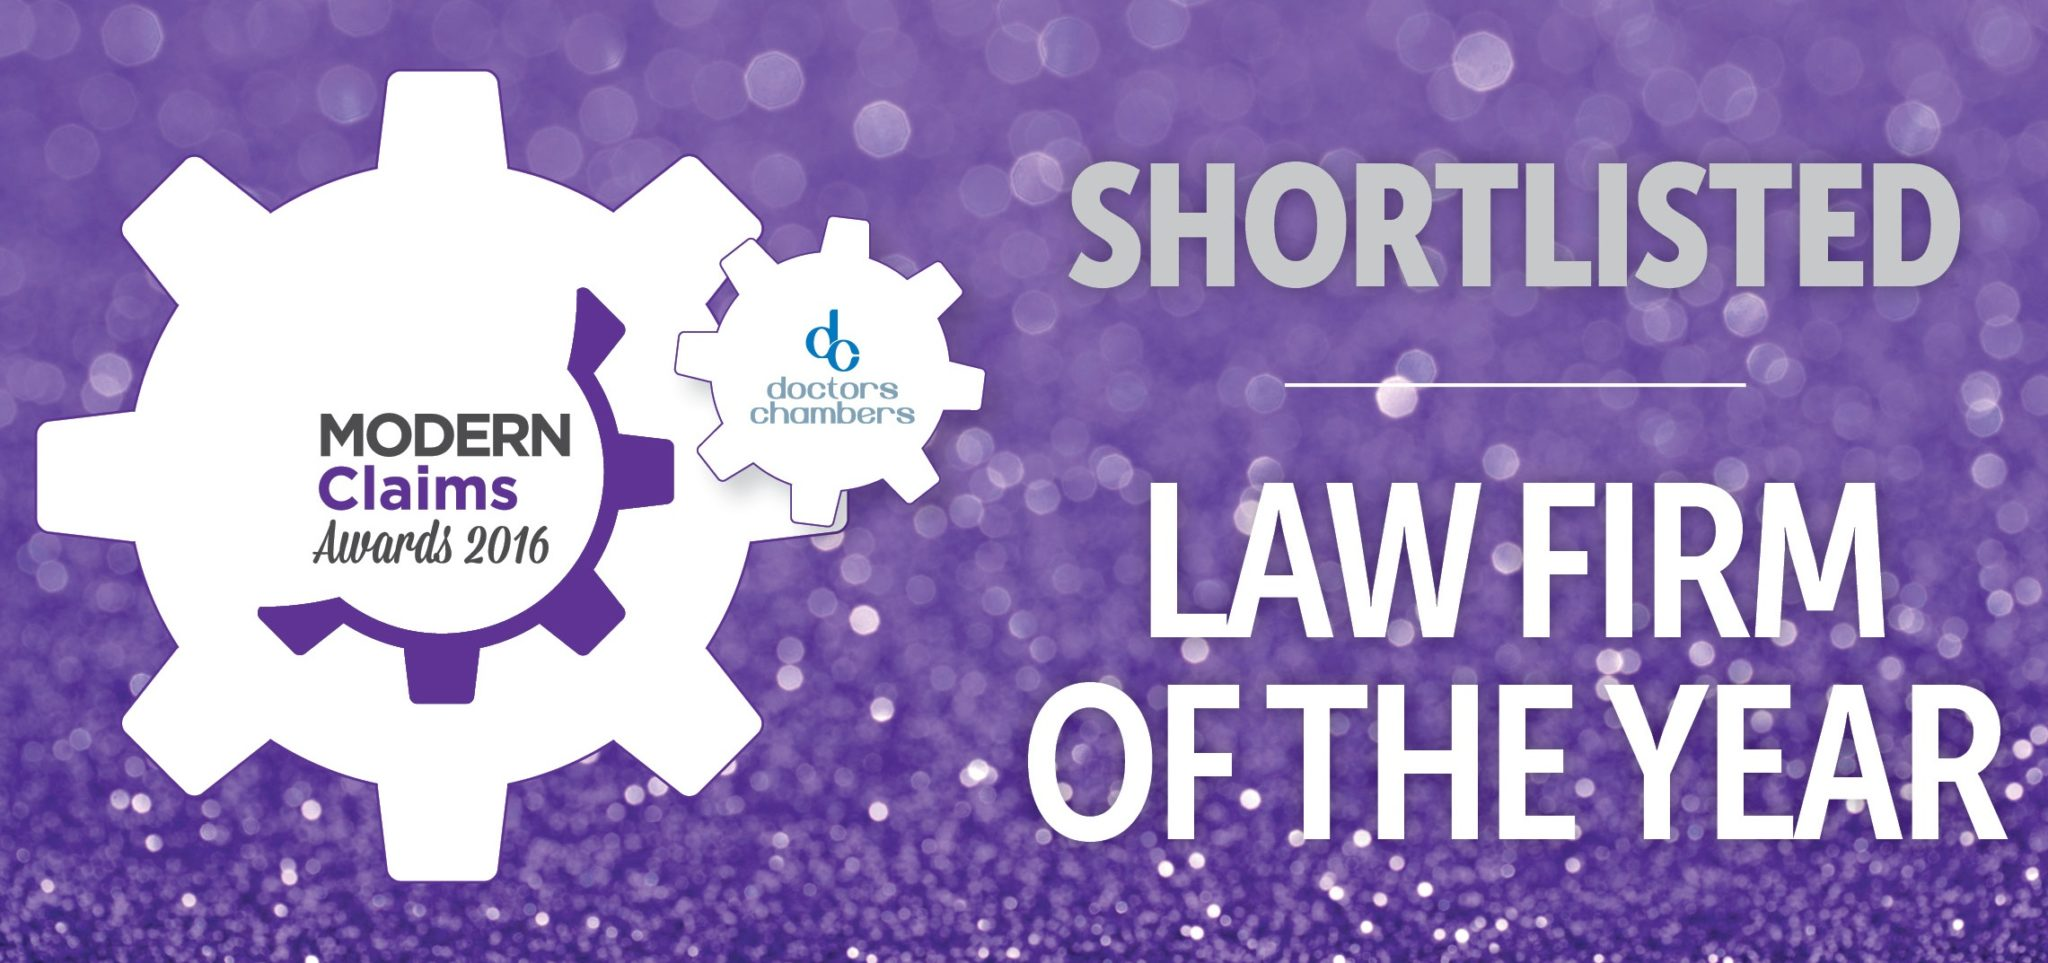 Modern Claims Law Firm of the Year 2016 logo